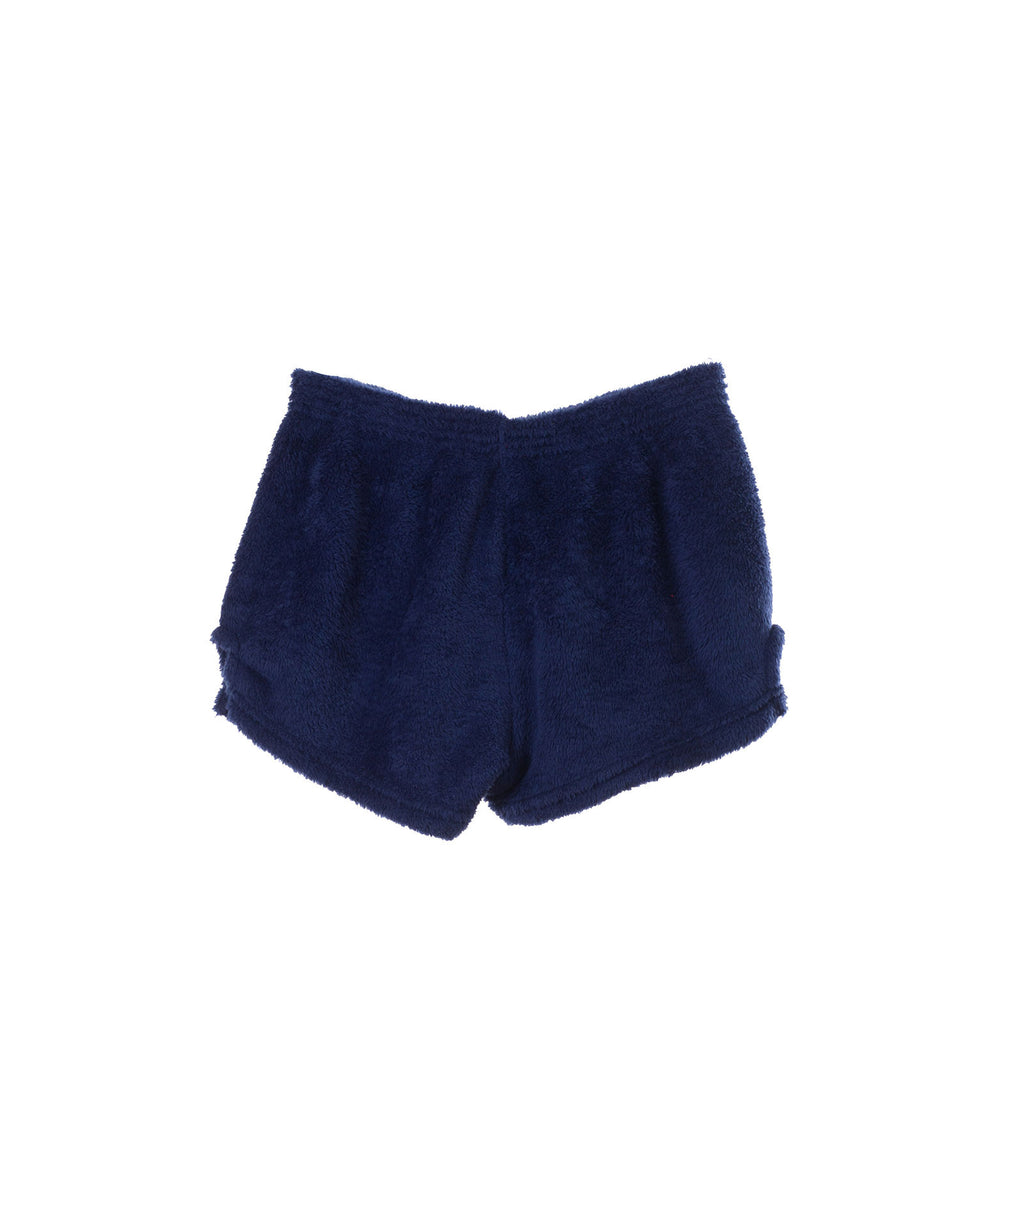 Camp Name PJ Shorts - Frankie's on the Park